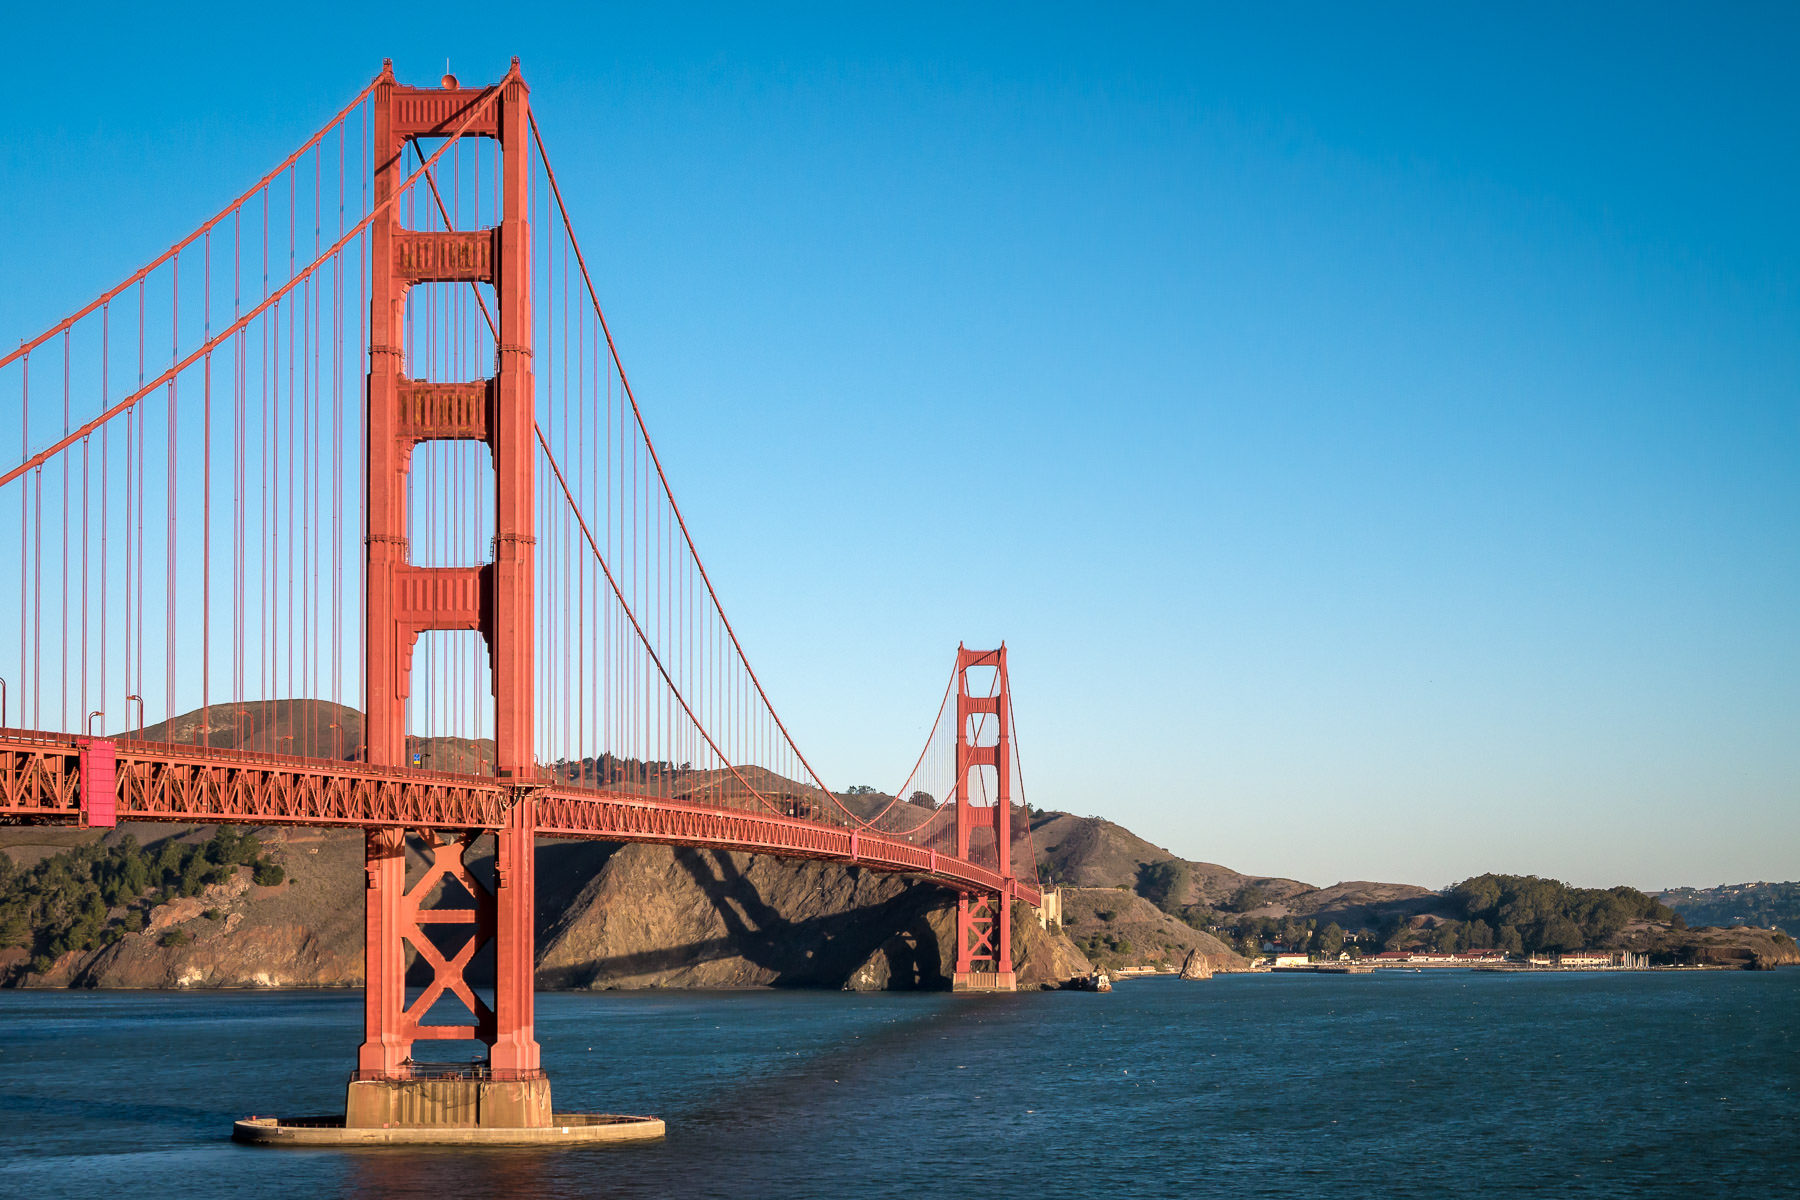 The iconic Golden Gate Bridge reaches for the Marin Headlands as it spans the entrance to San Francisco Bay.